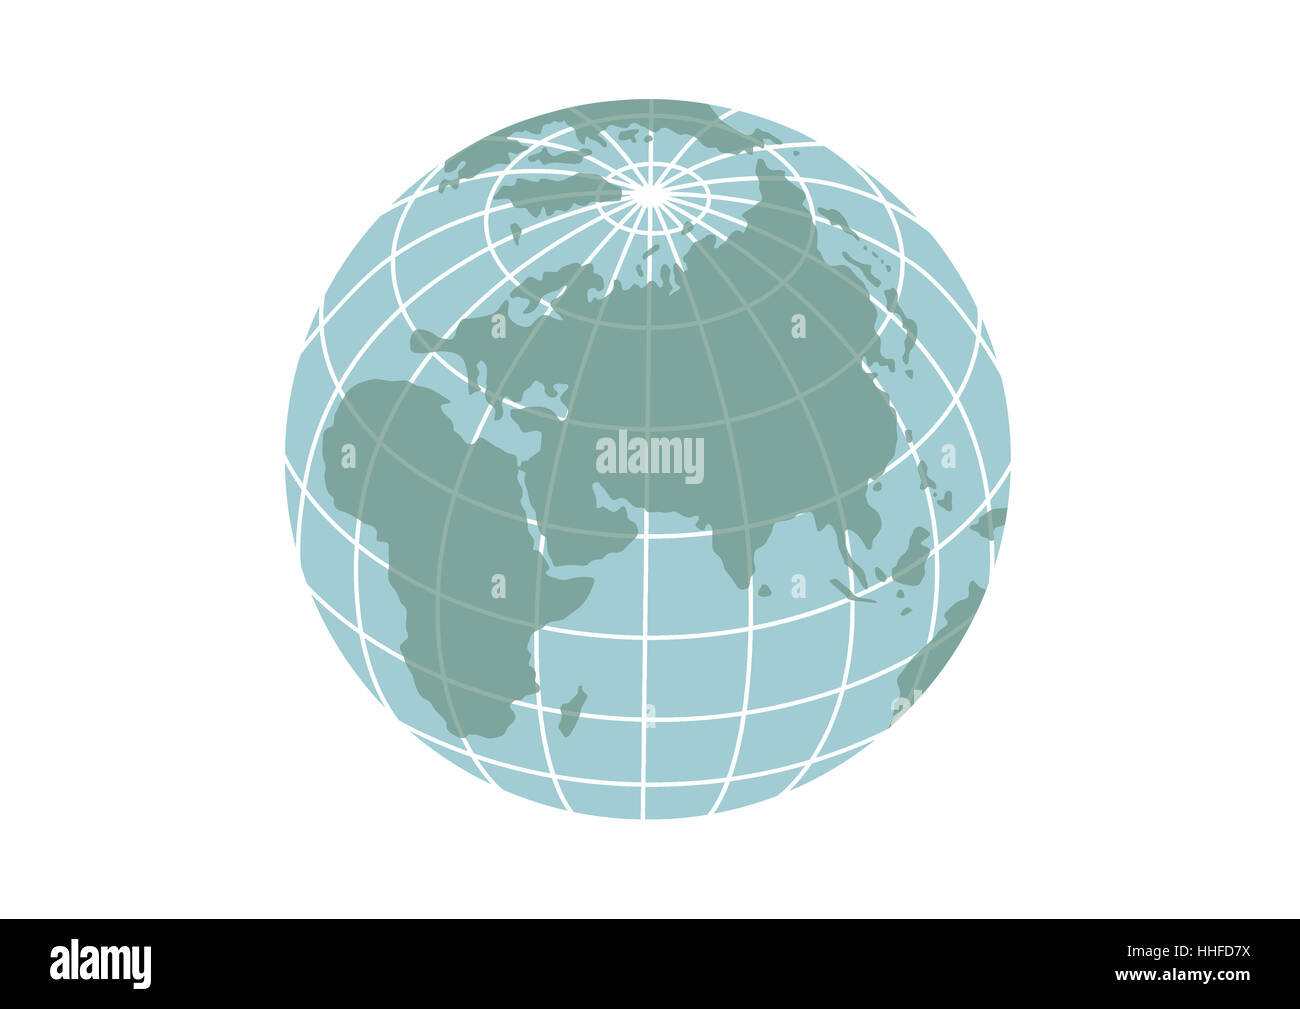 Illustration of planet Earth icon isolated on a white background. - Stock Image